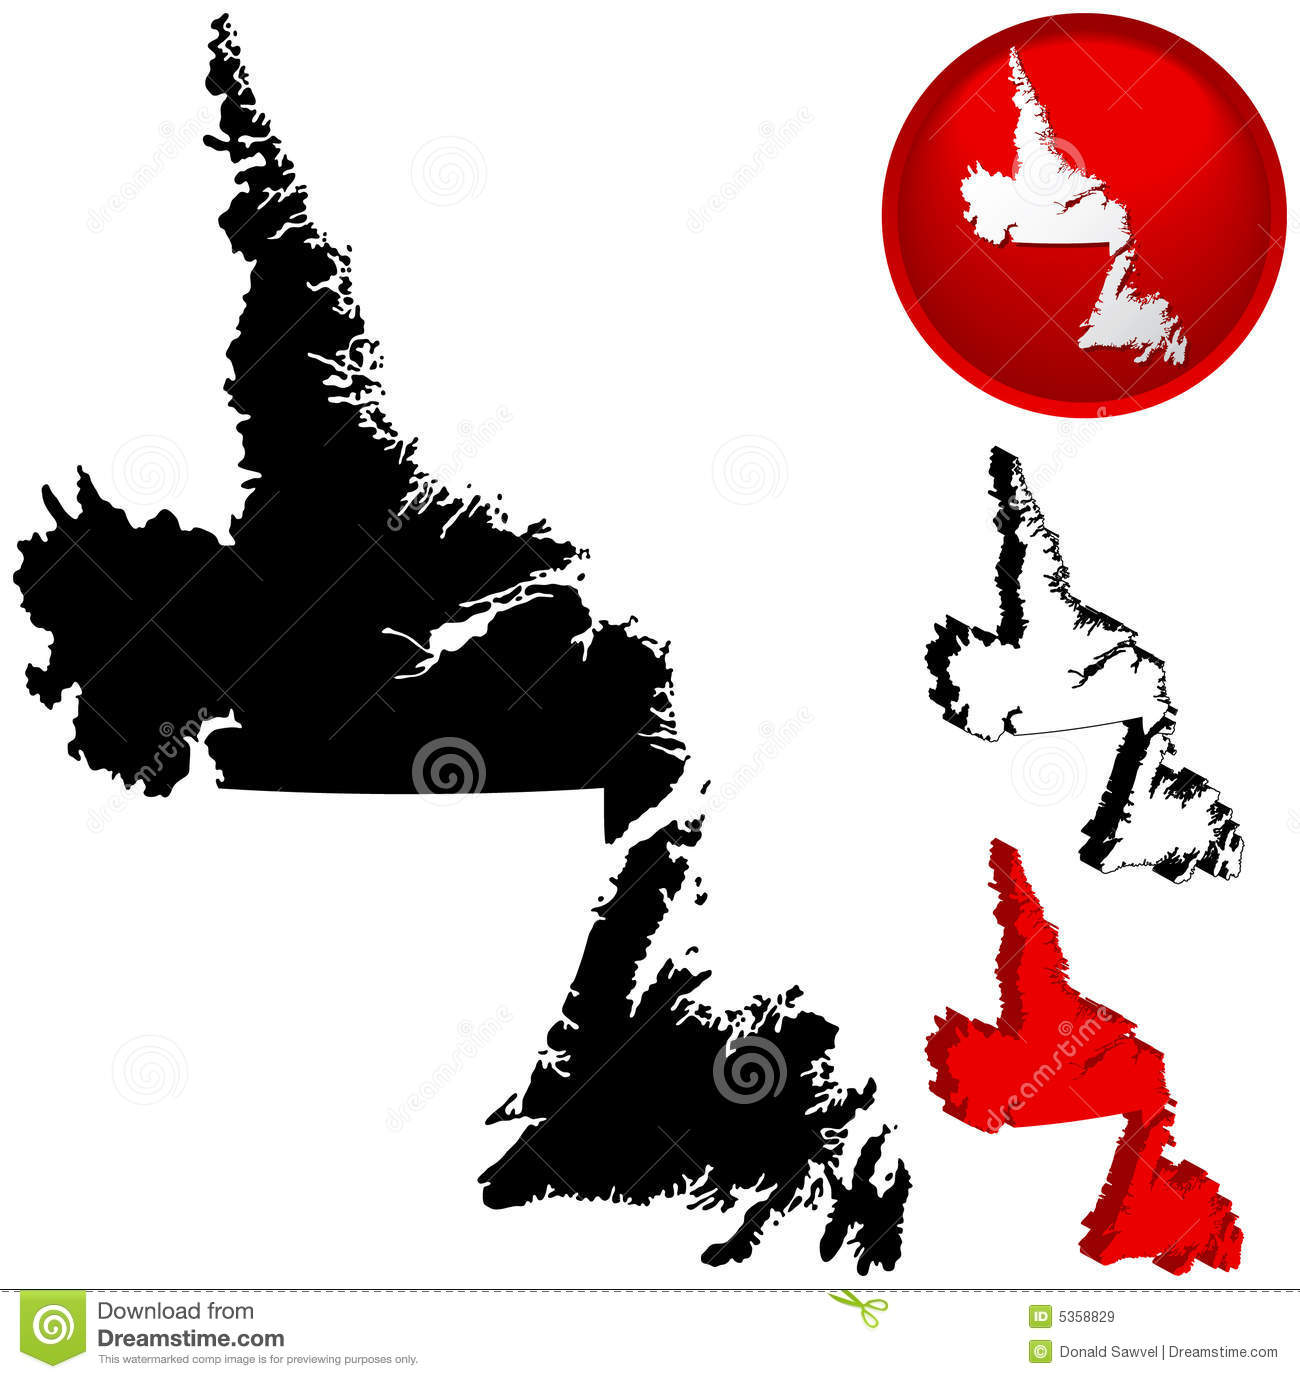 Newfoundland clipart #15, Download drawings